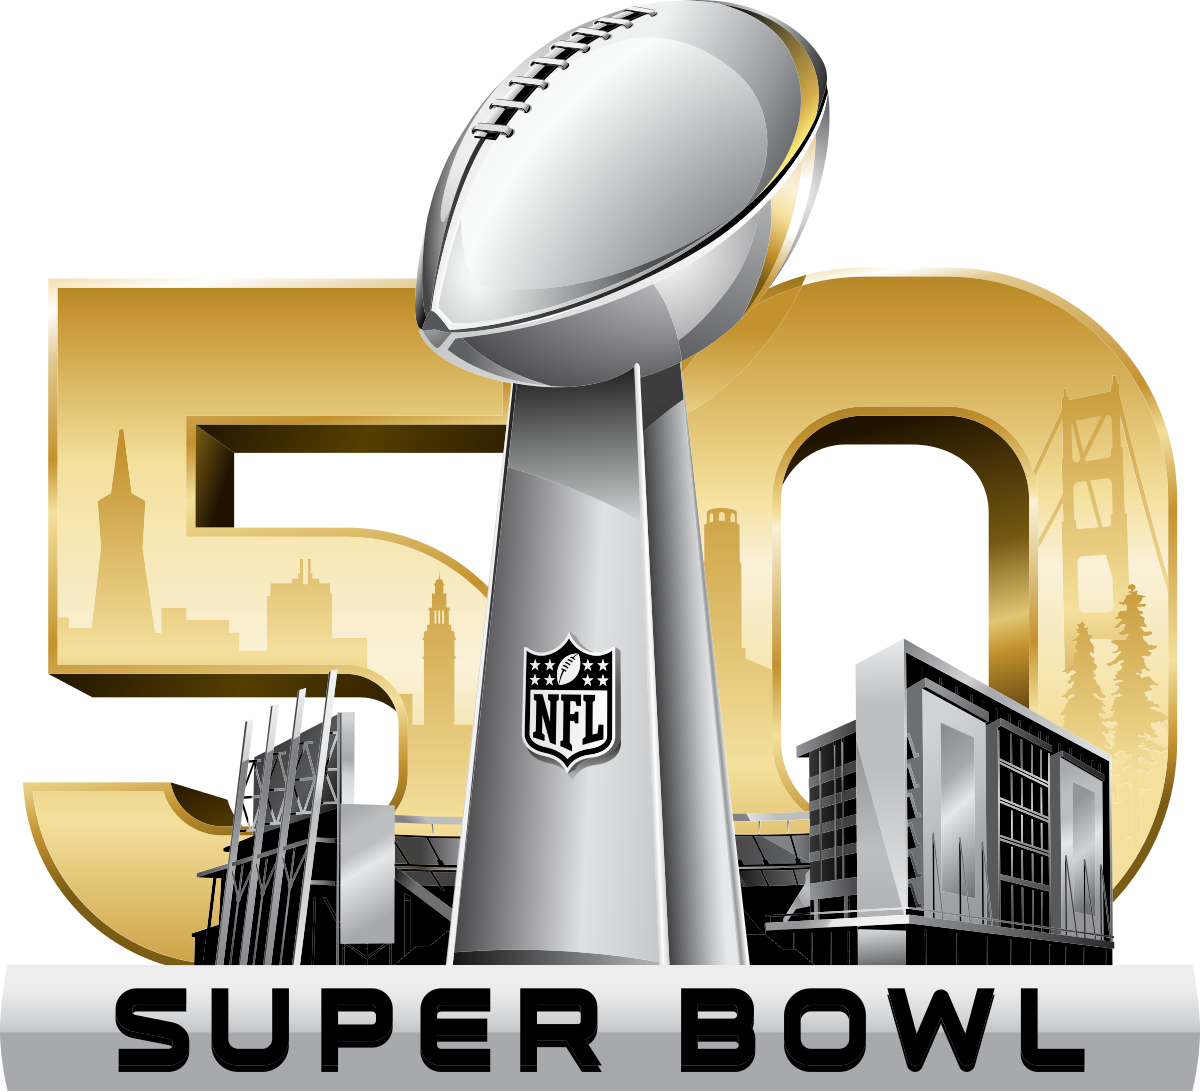 superbowl drawing lombardi trophy